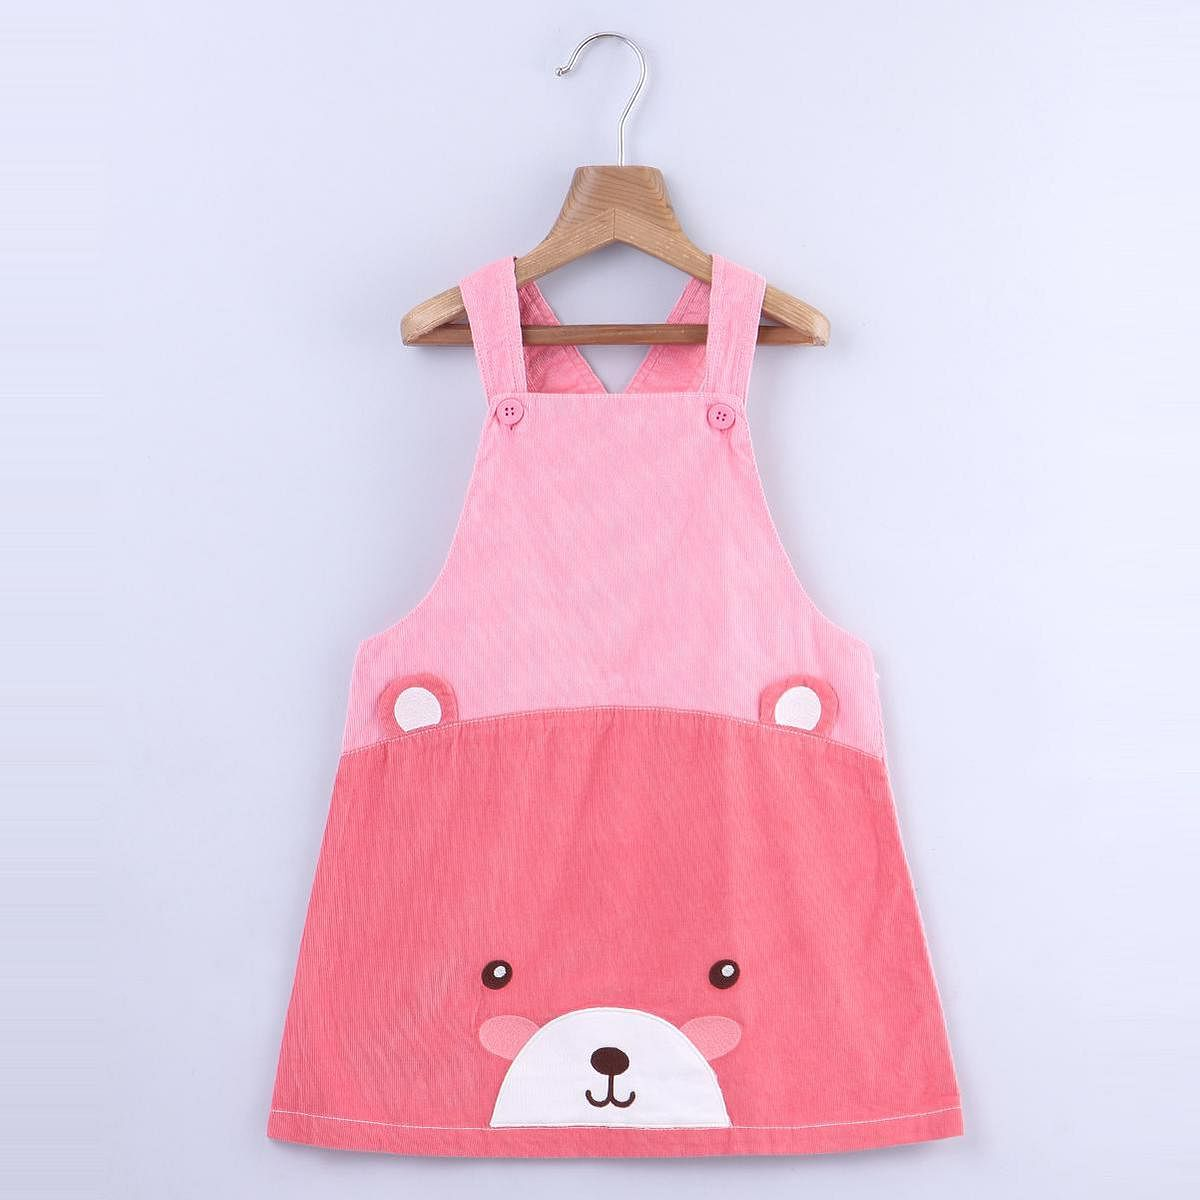 Beebay - Pink Colored Bear Face Corduroy Pinafore Cotton Dress For Infants Girls